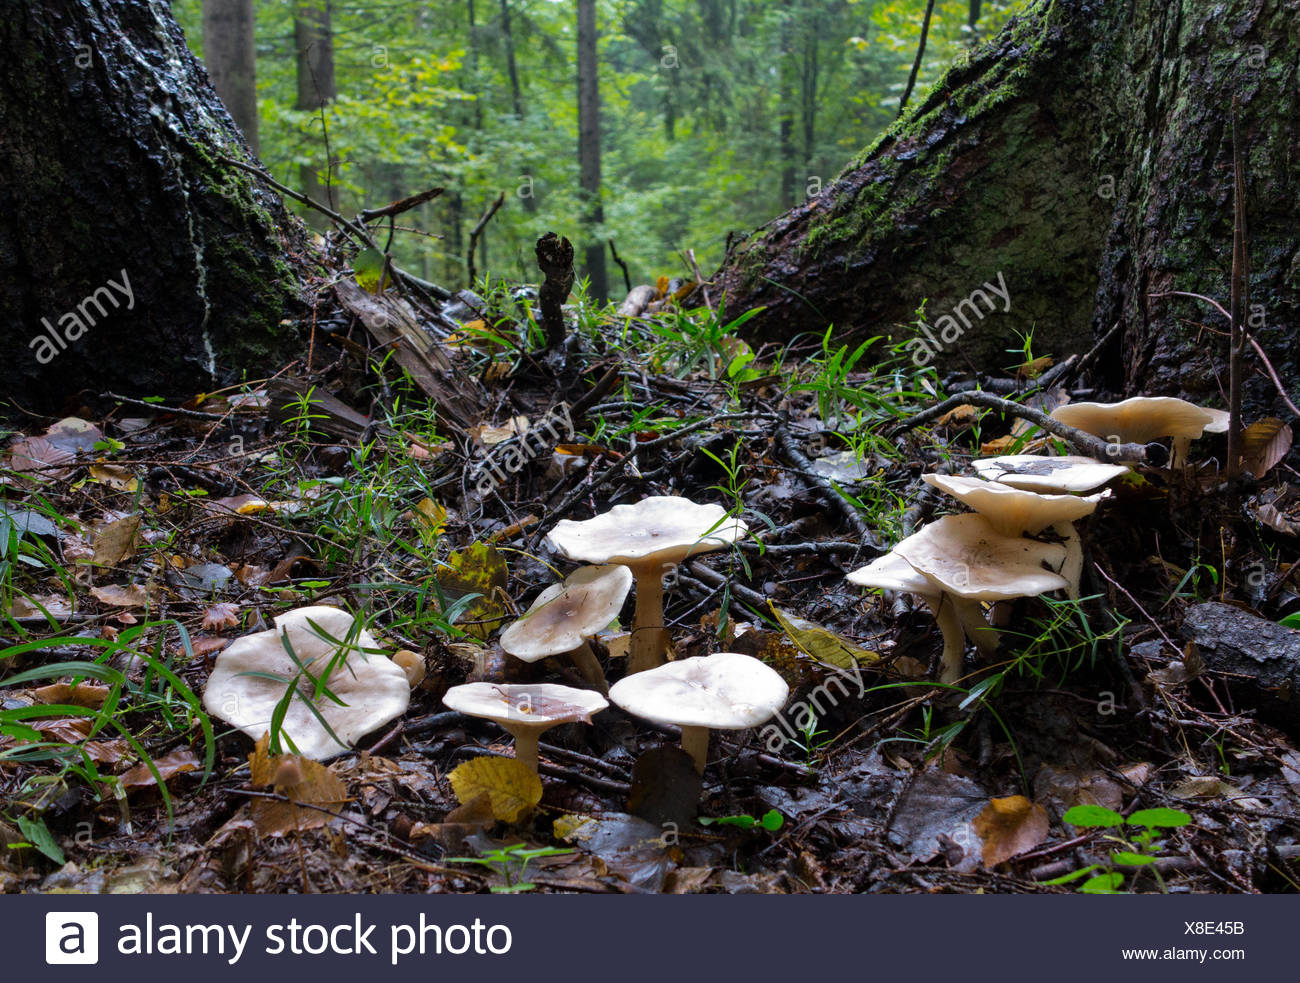 Group of fungus among two old spruces close up - Stock Image